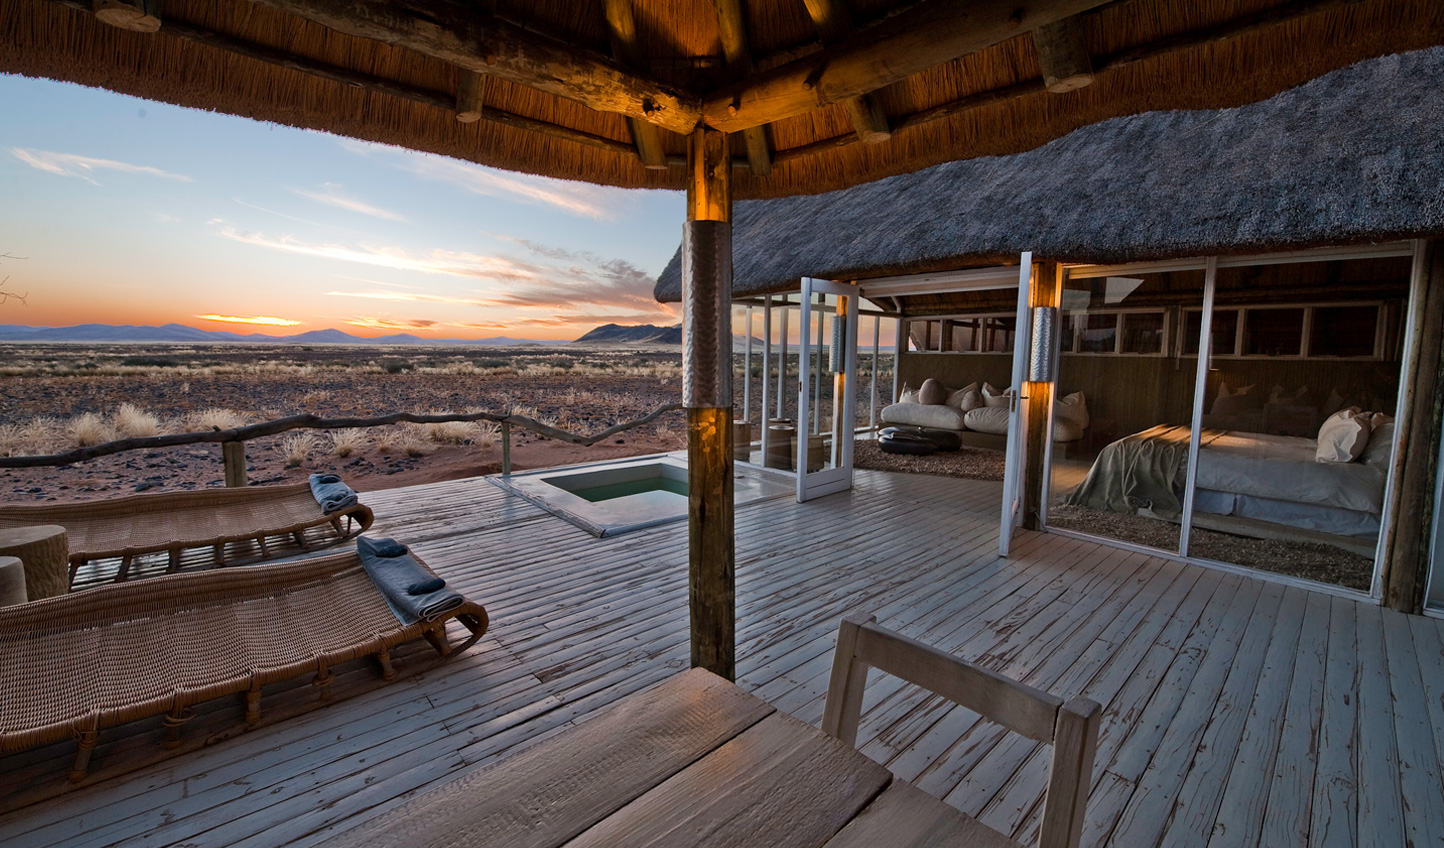 Stay at Little Kulala, the gateway to Namibia's Sand Sea